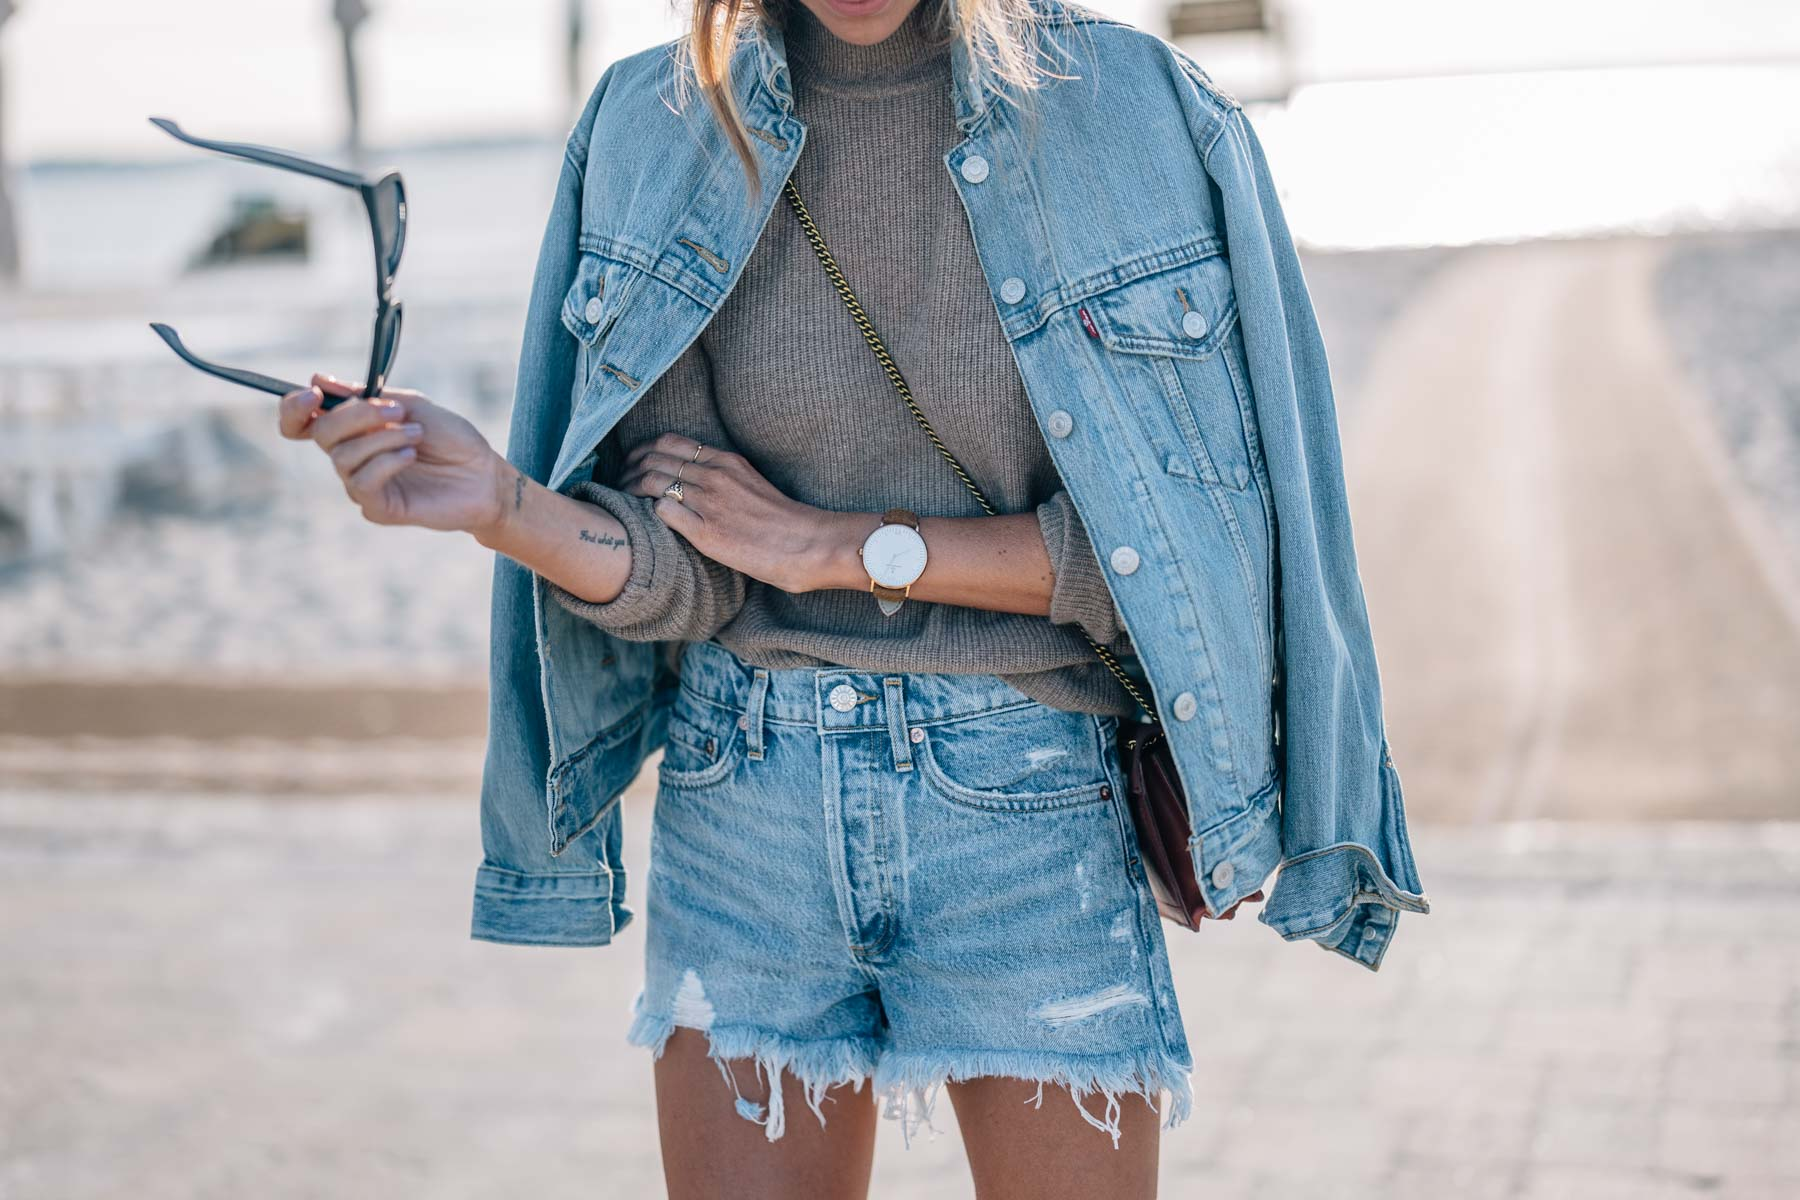 Jess Kirby wears denim on denim with a jean jacket, cashmere sweater and Agolde Parker vintage denim shorts